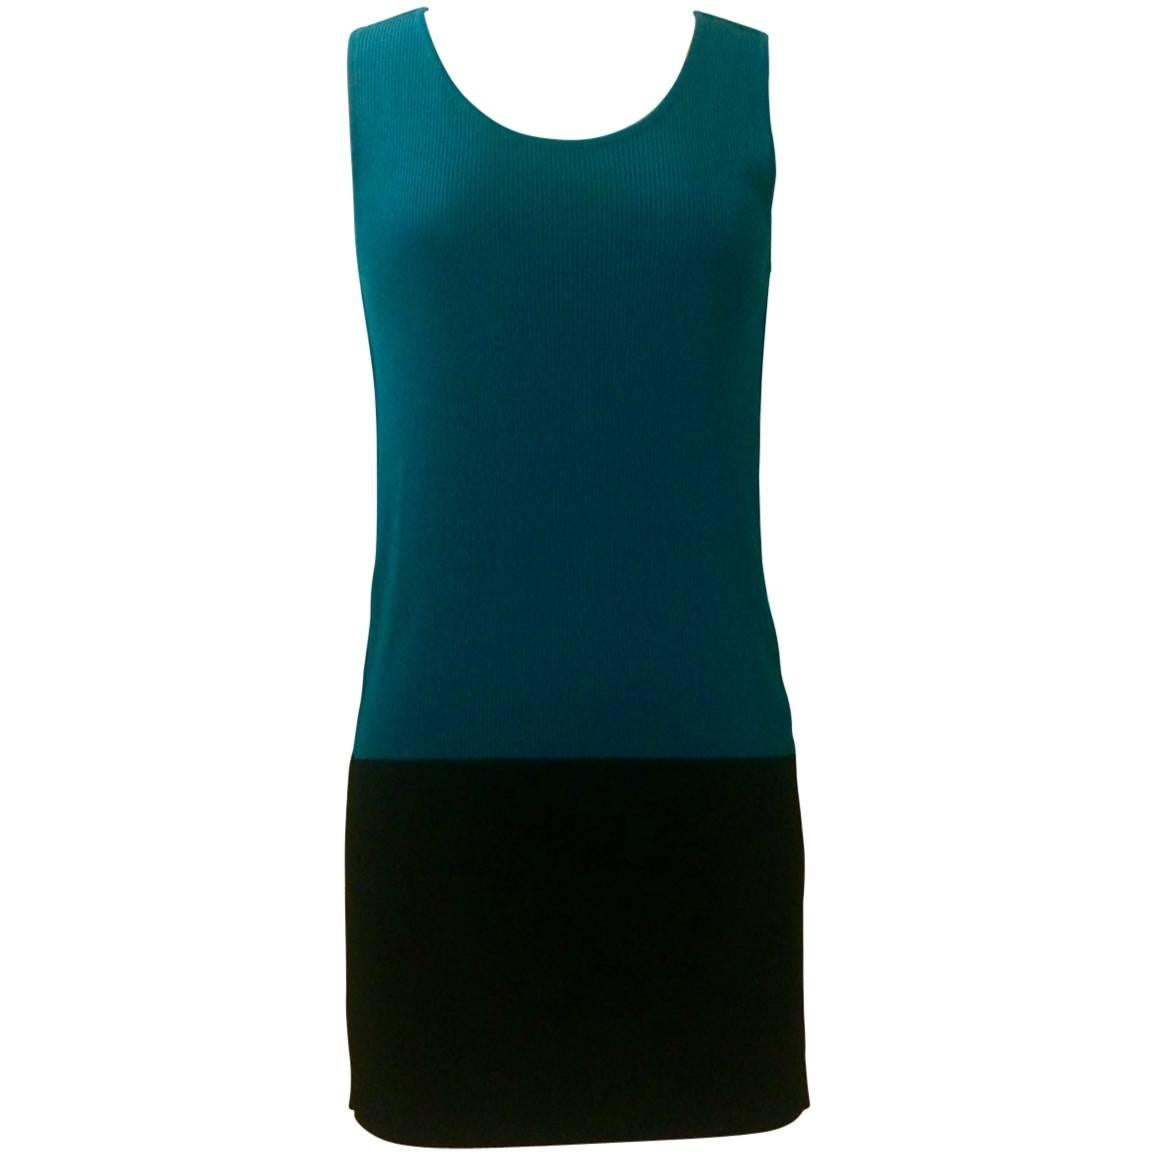 Issey Miyake Minimalist Knit Teal Blue and Black Colorblock Tank dress, 1990s